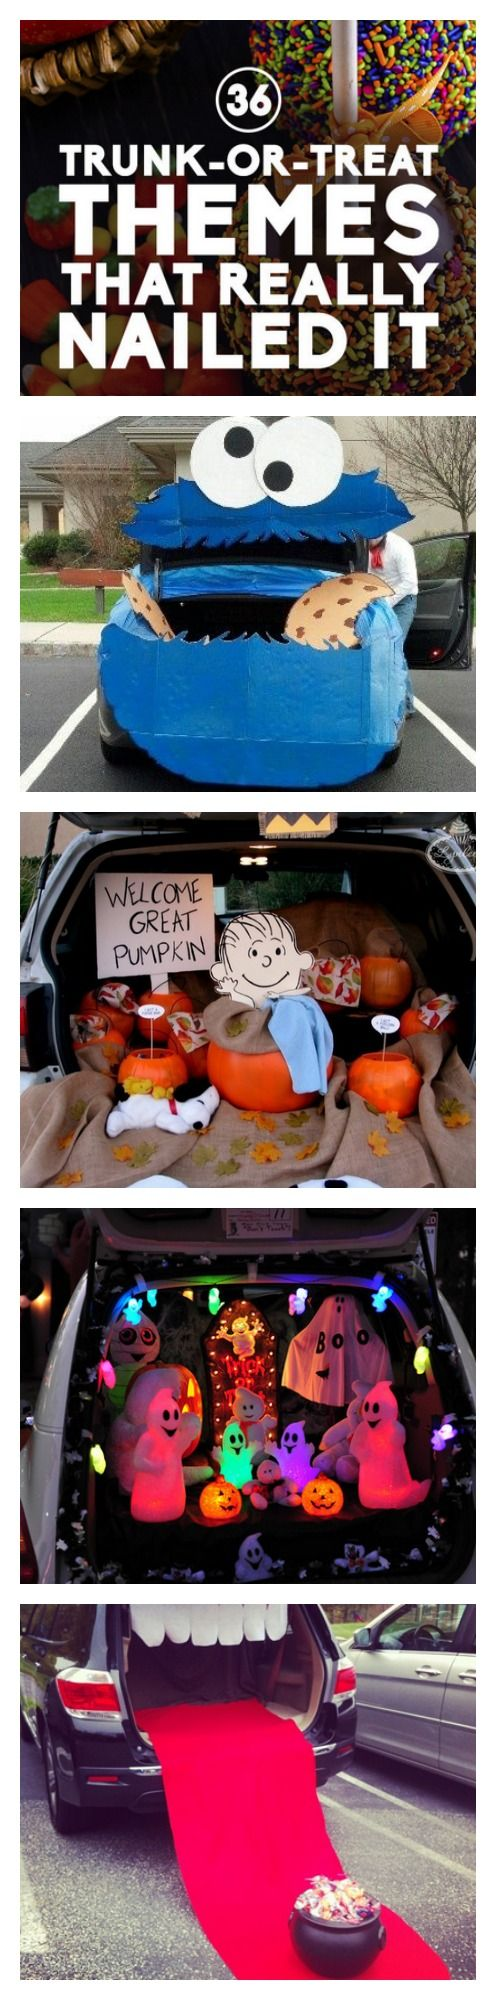 Decorated Trunk or Treat Ideas - clever Halloween decorating ideas for cars and SUV's - BuzzFeed